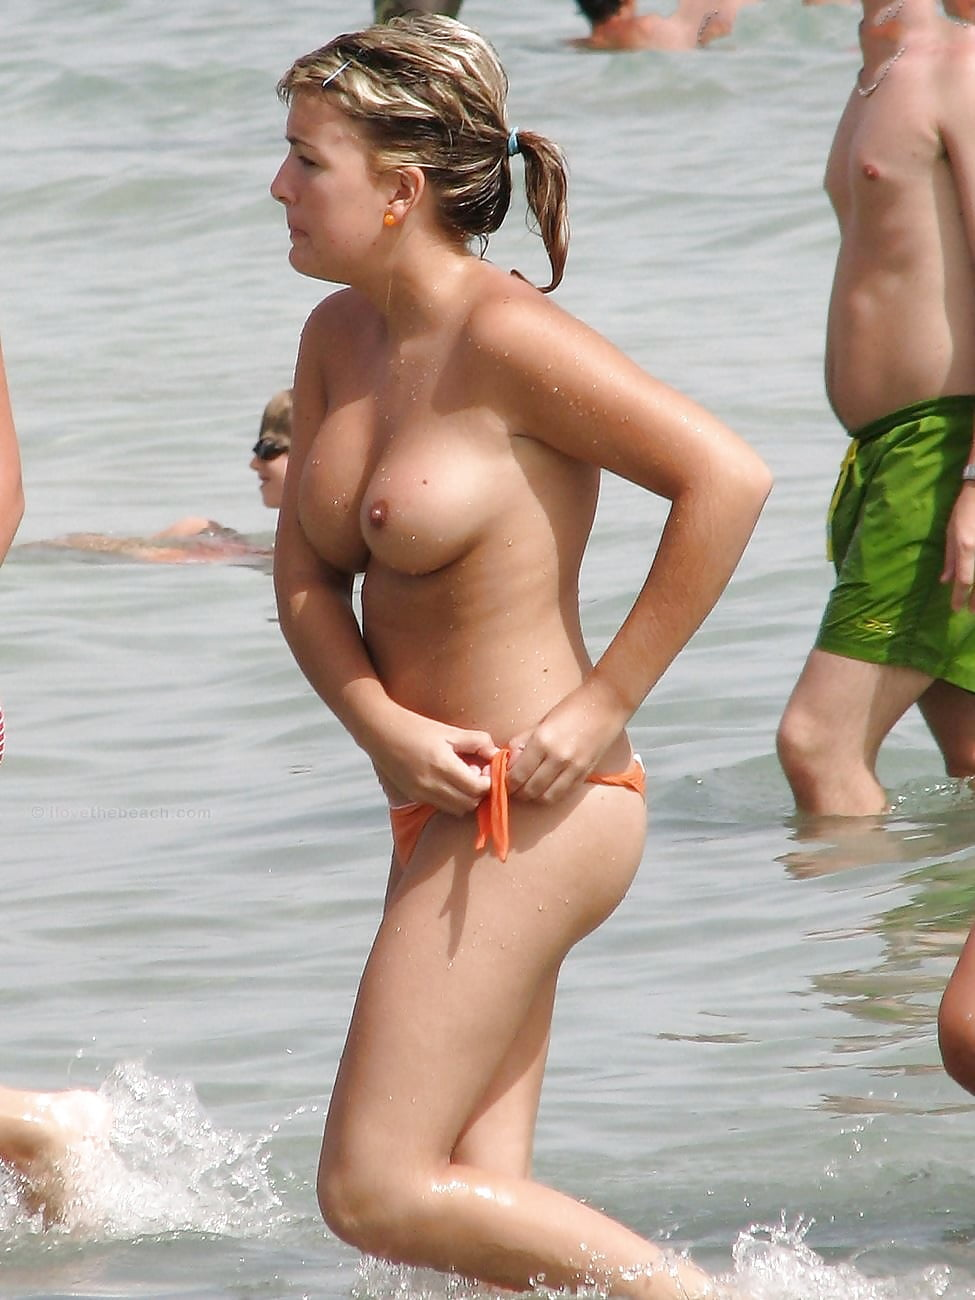 Sexy Favorites 419 - Naked Beach Babes - 48 Pics -2766